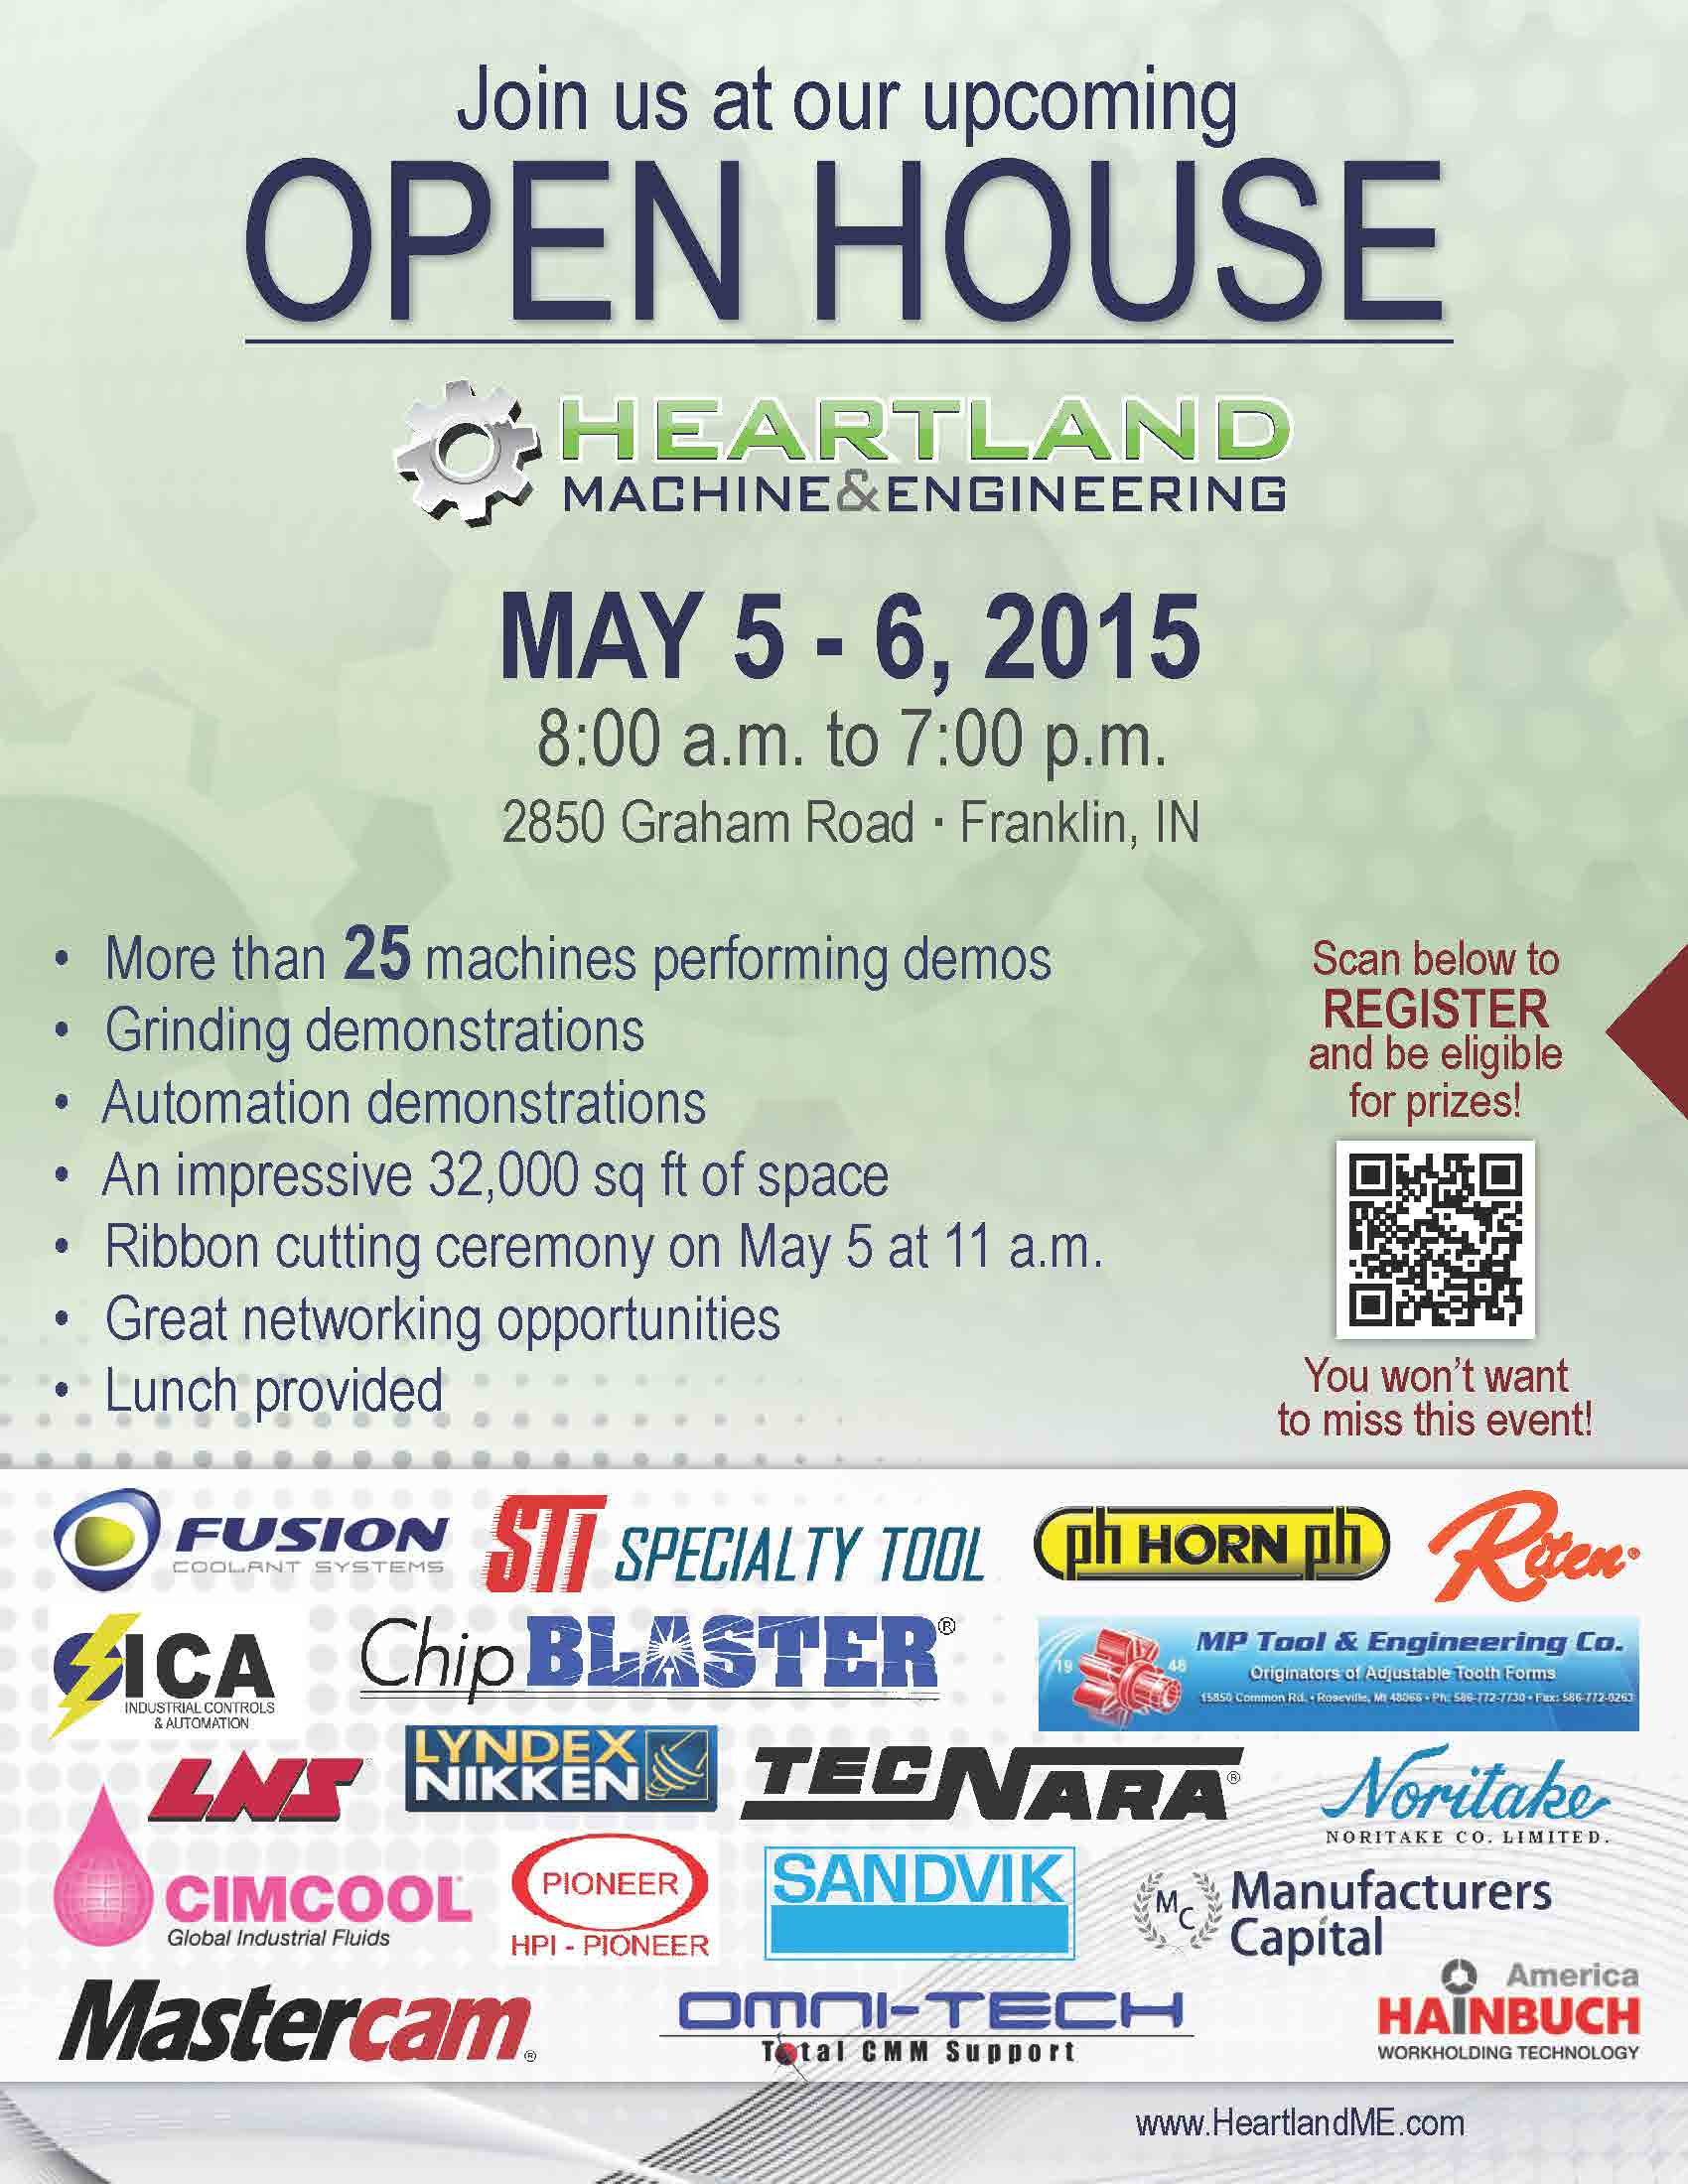 Open House Printed Flyer_150331_FINAL 1